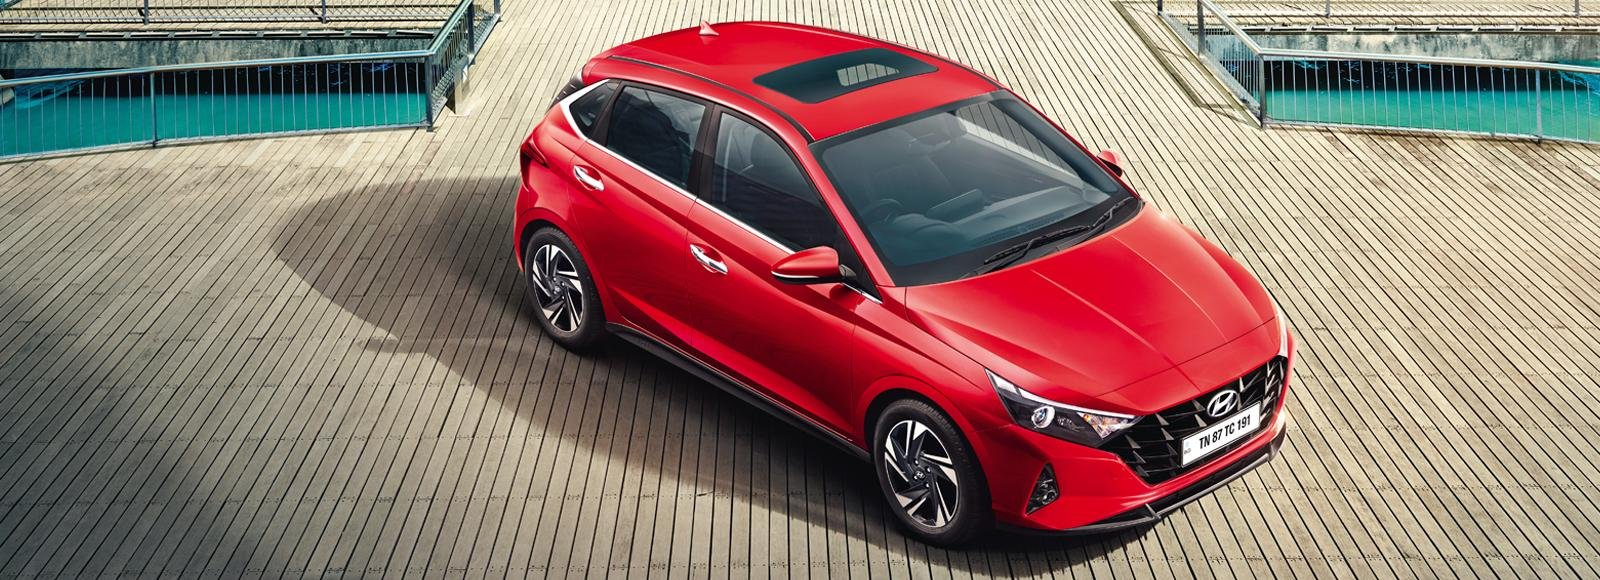 Top-5 Best Selling Premium Hatchbacks In India, March 2021